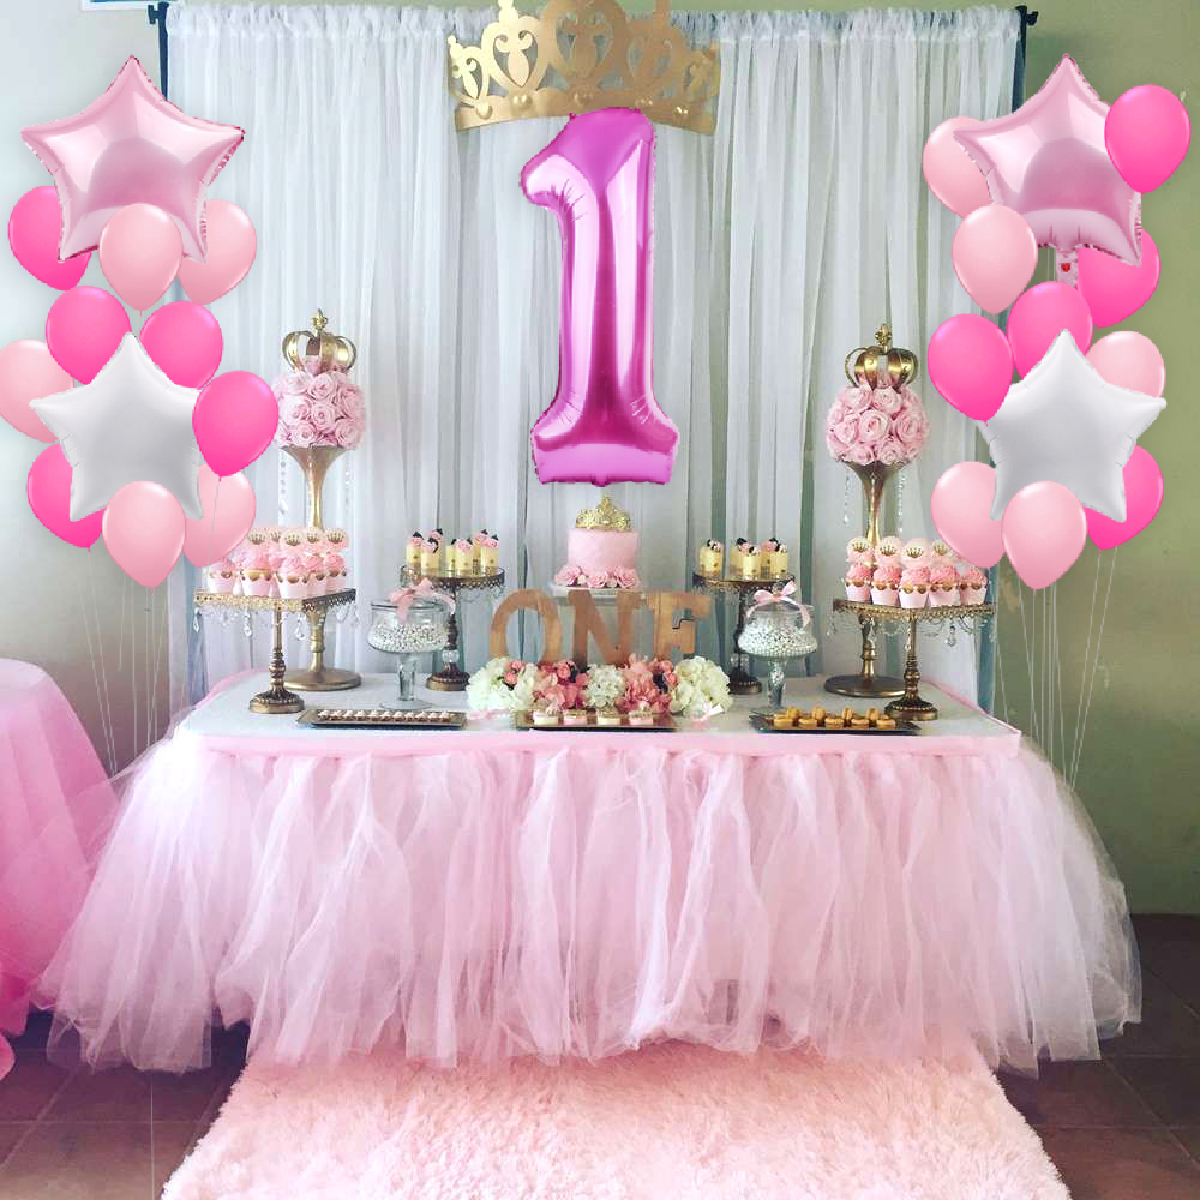 Huiran <font><b>1</b></font> Year Babyshower Happy <font><b>Birthday</b></font> Balloons Foil Baloon Number Ballon 1st <font><b>Birthday</b></font> Party <font><b>Decor</b></font> Kid Boy <font><b>Girl</b></font> First <font><b>Birthday</b></font> image